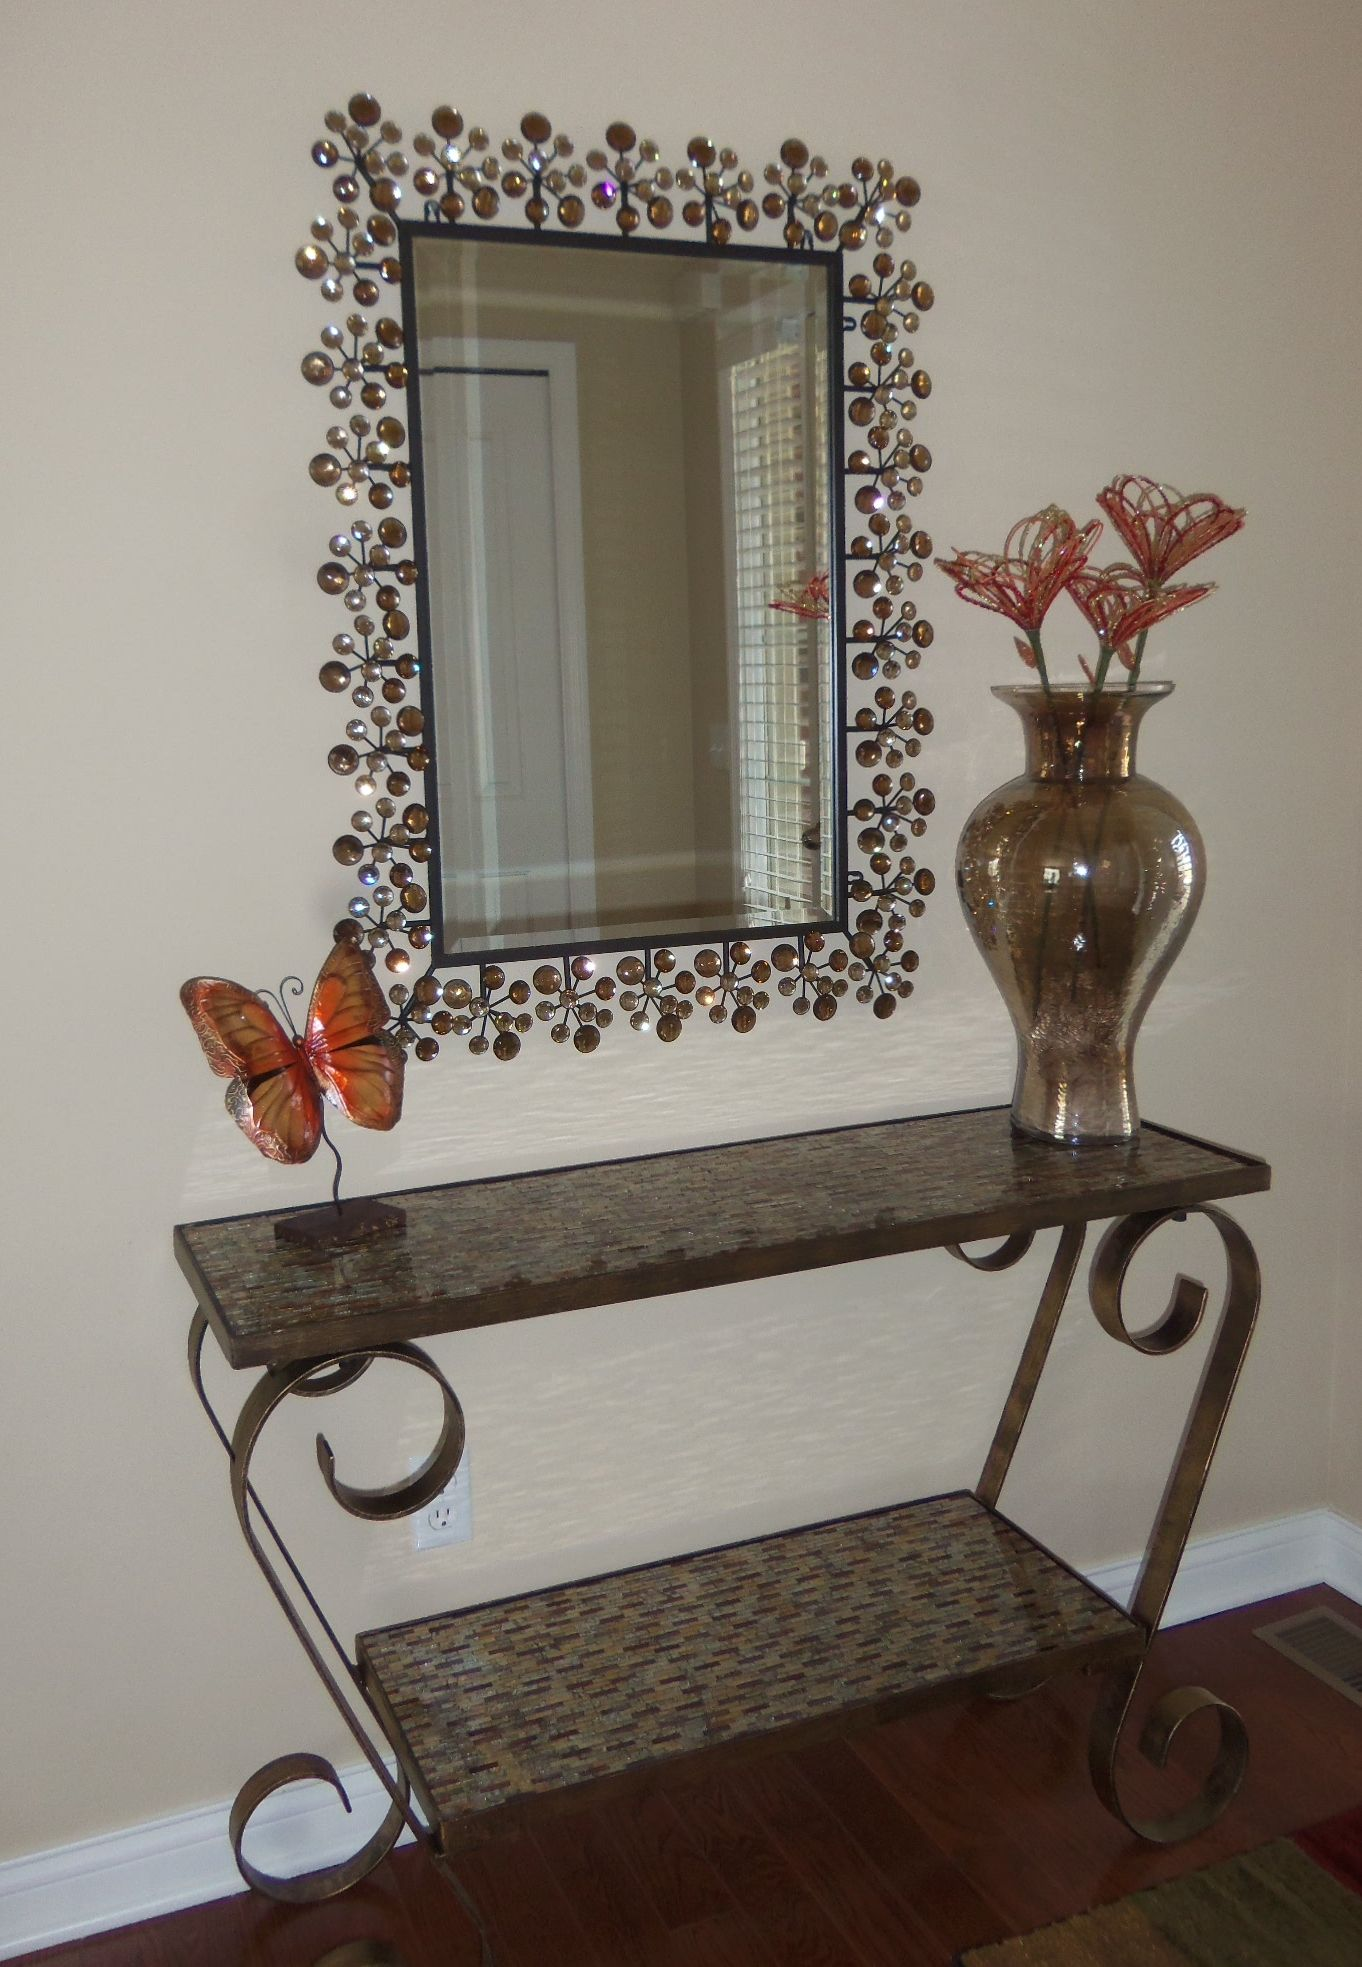 Foyer Table Vases : Pier entryway amber dazzle mirror mosaic console